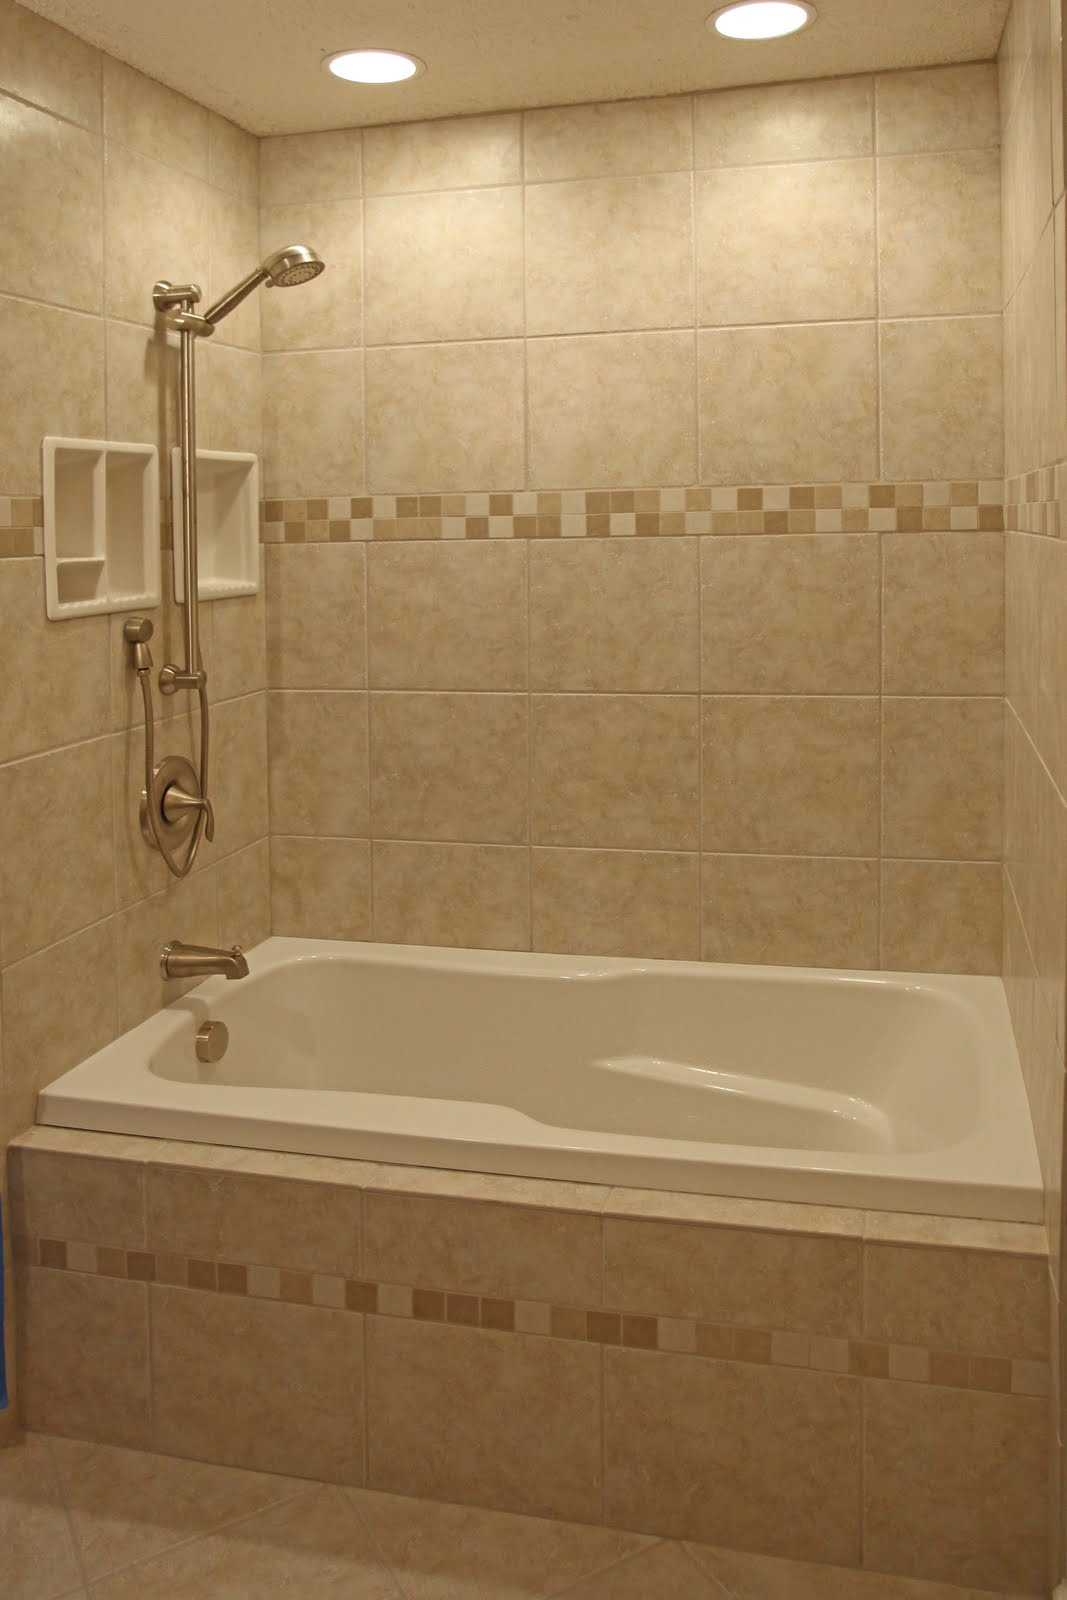 Bathroom remodeling design ideas tile shower niches for Designs of bathroom tiles